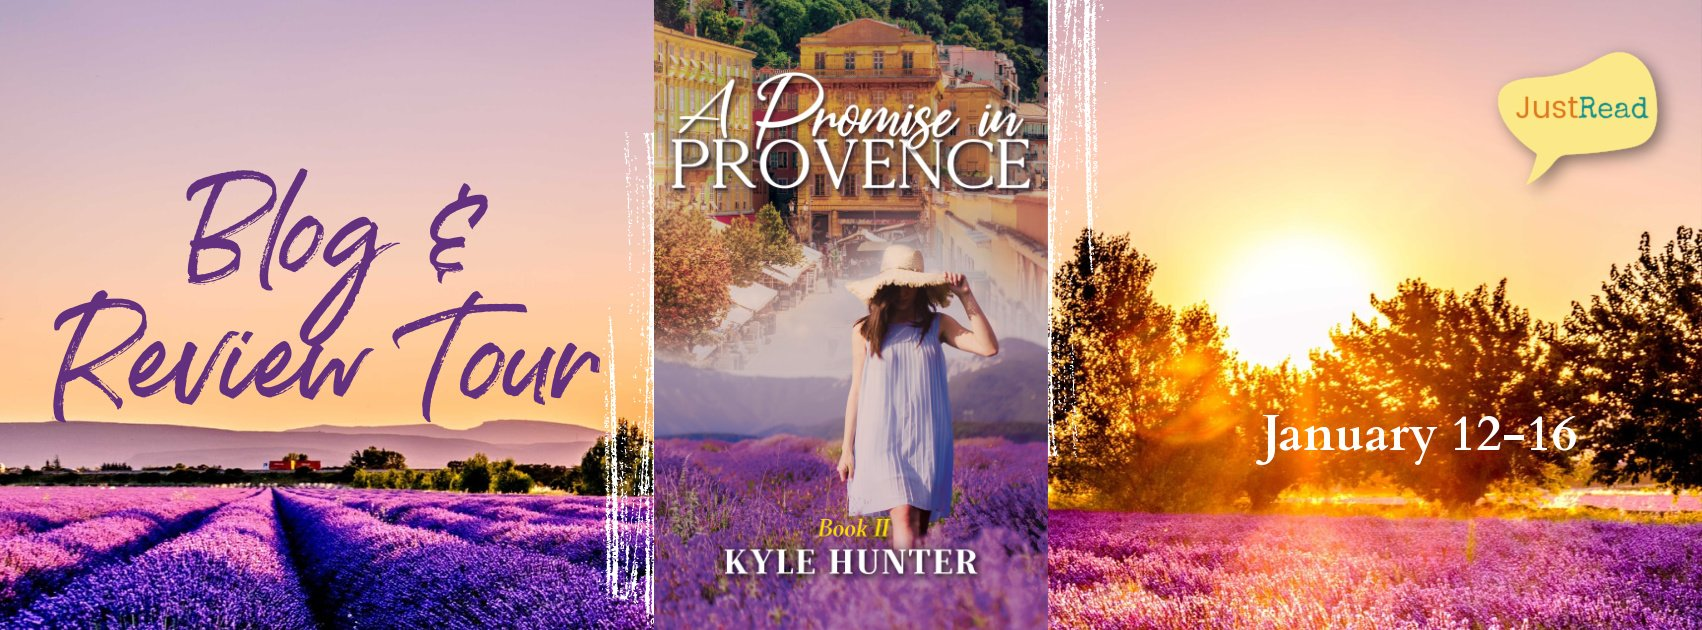 Welcome to the A Promise in Provence Blog + Review Tour & Giveaway!